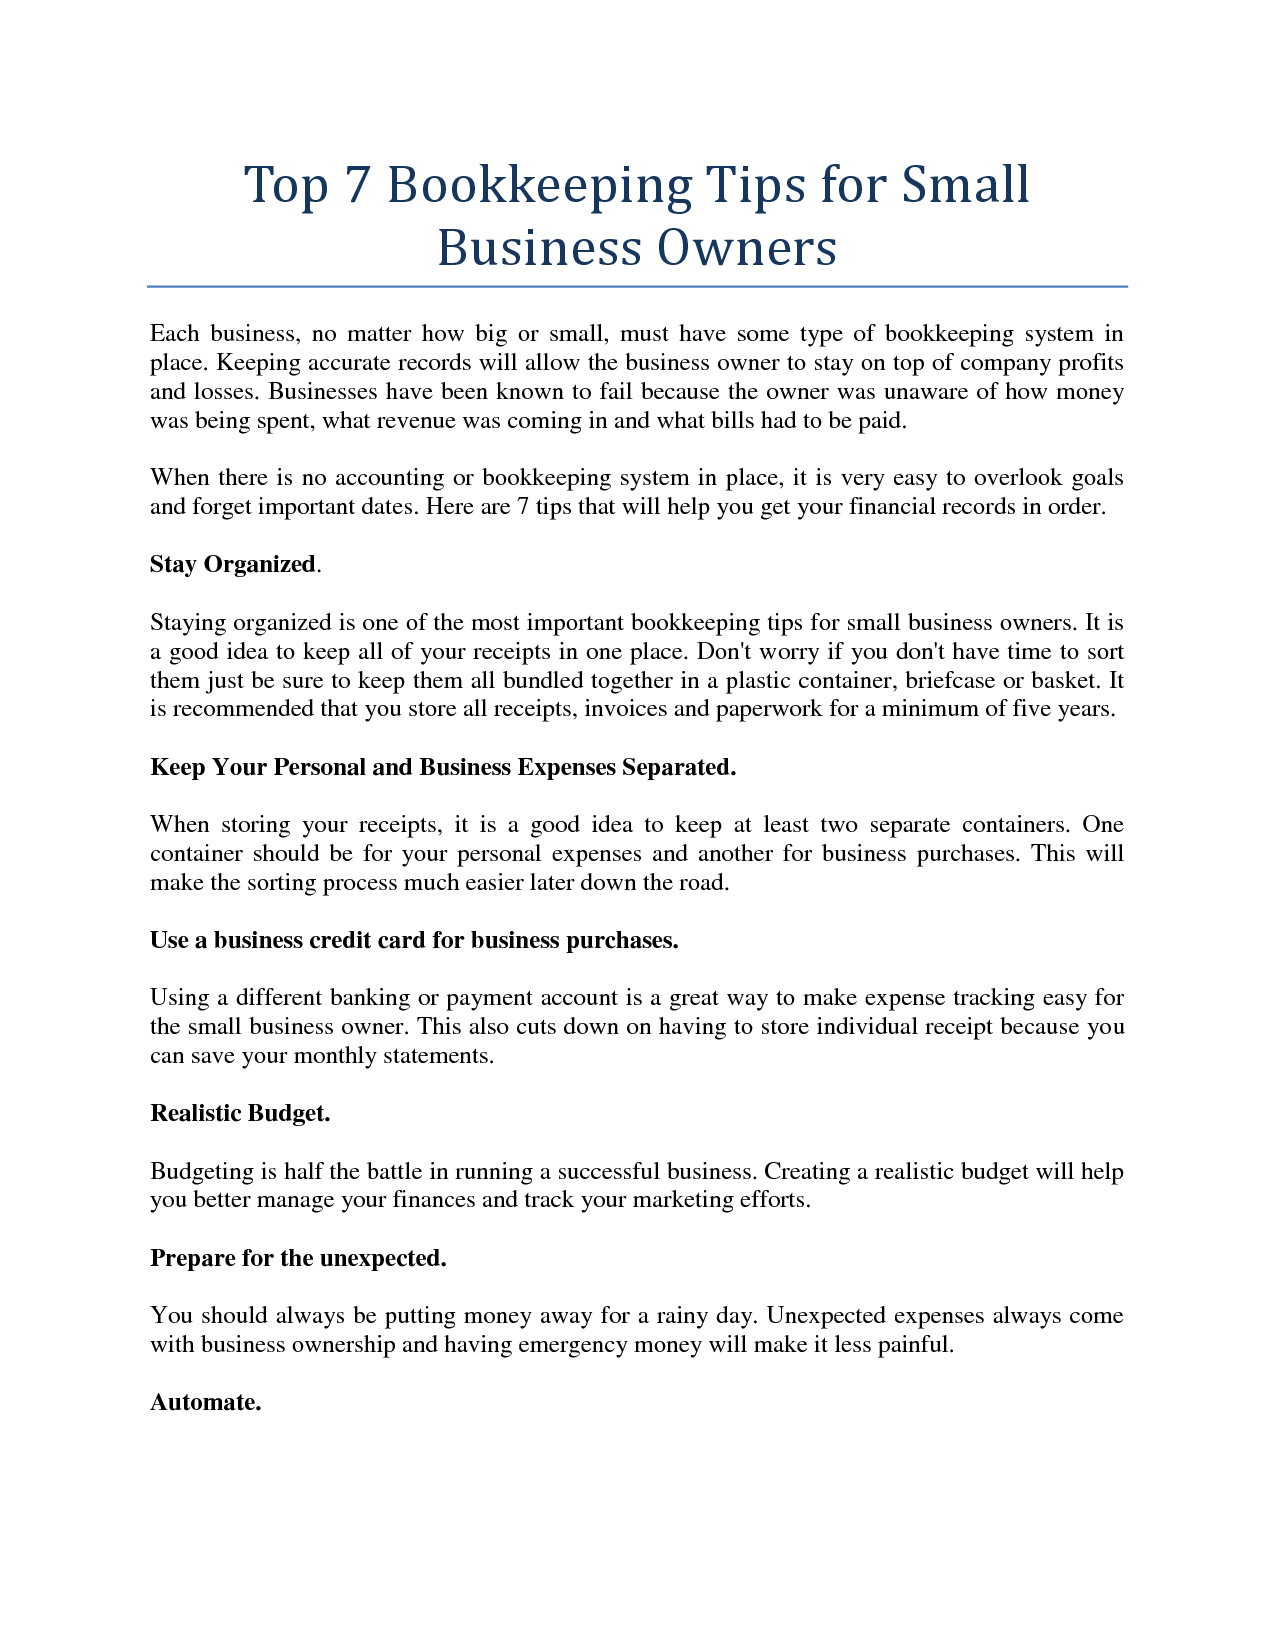 Small business bookkeeping tips acounting and financial tips small business bookkeeping tips reheart Images